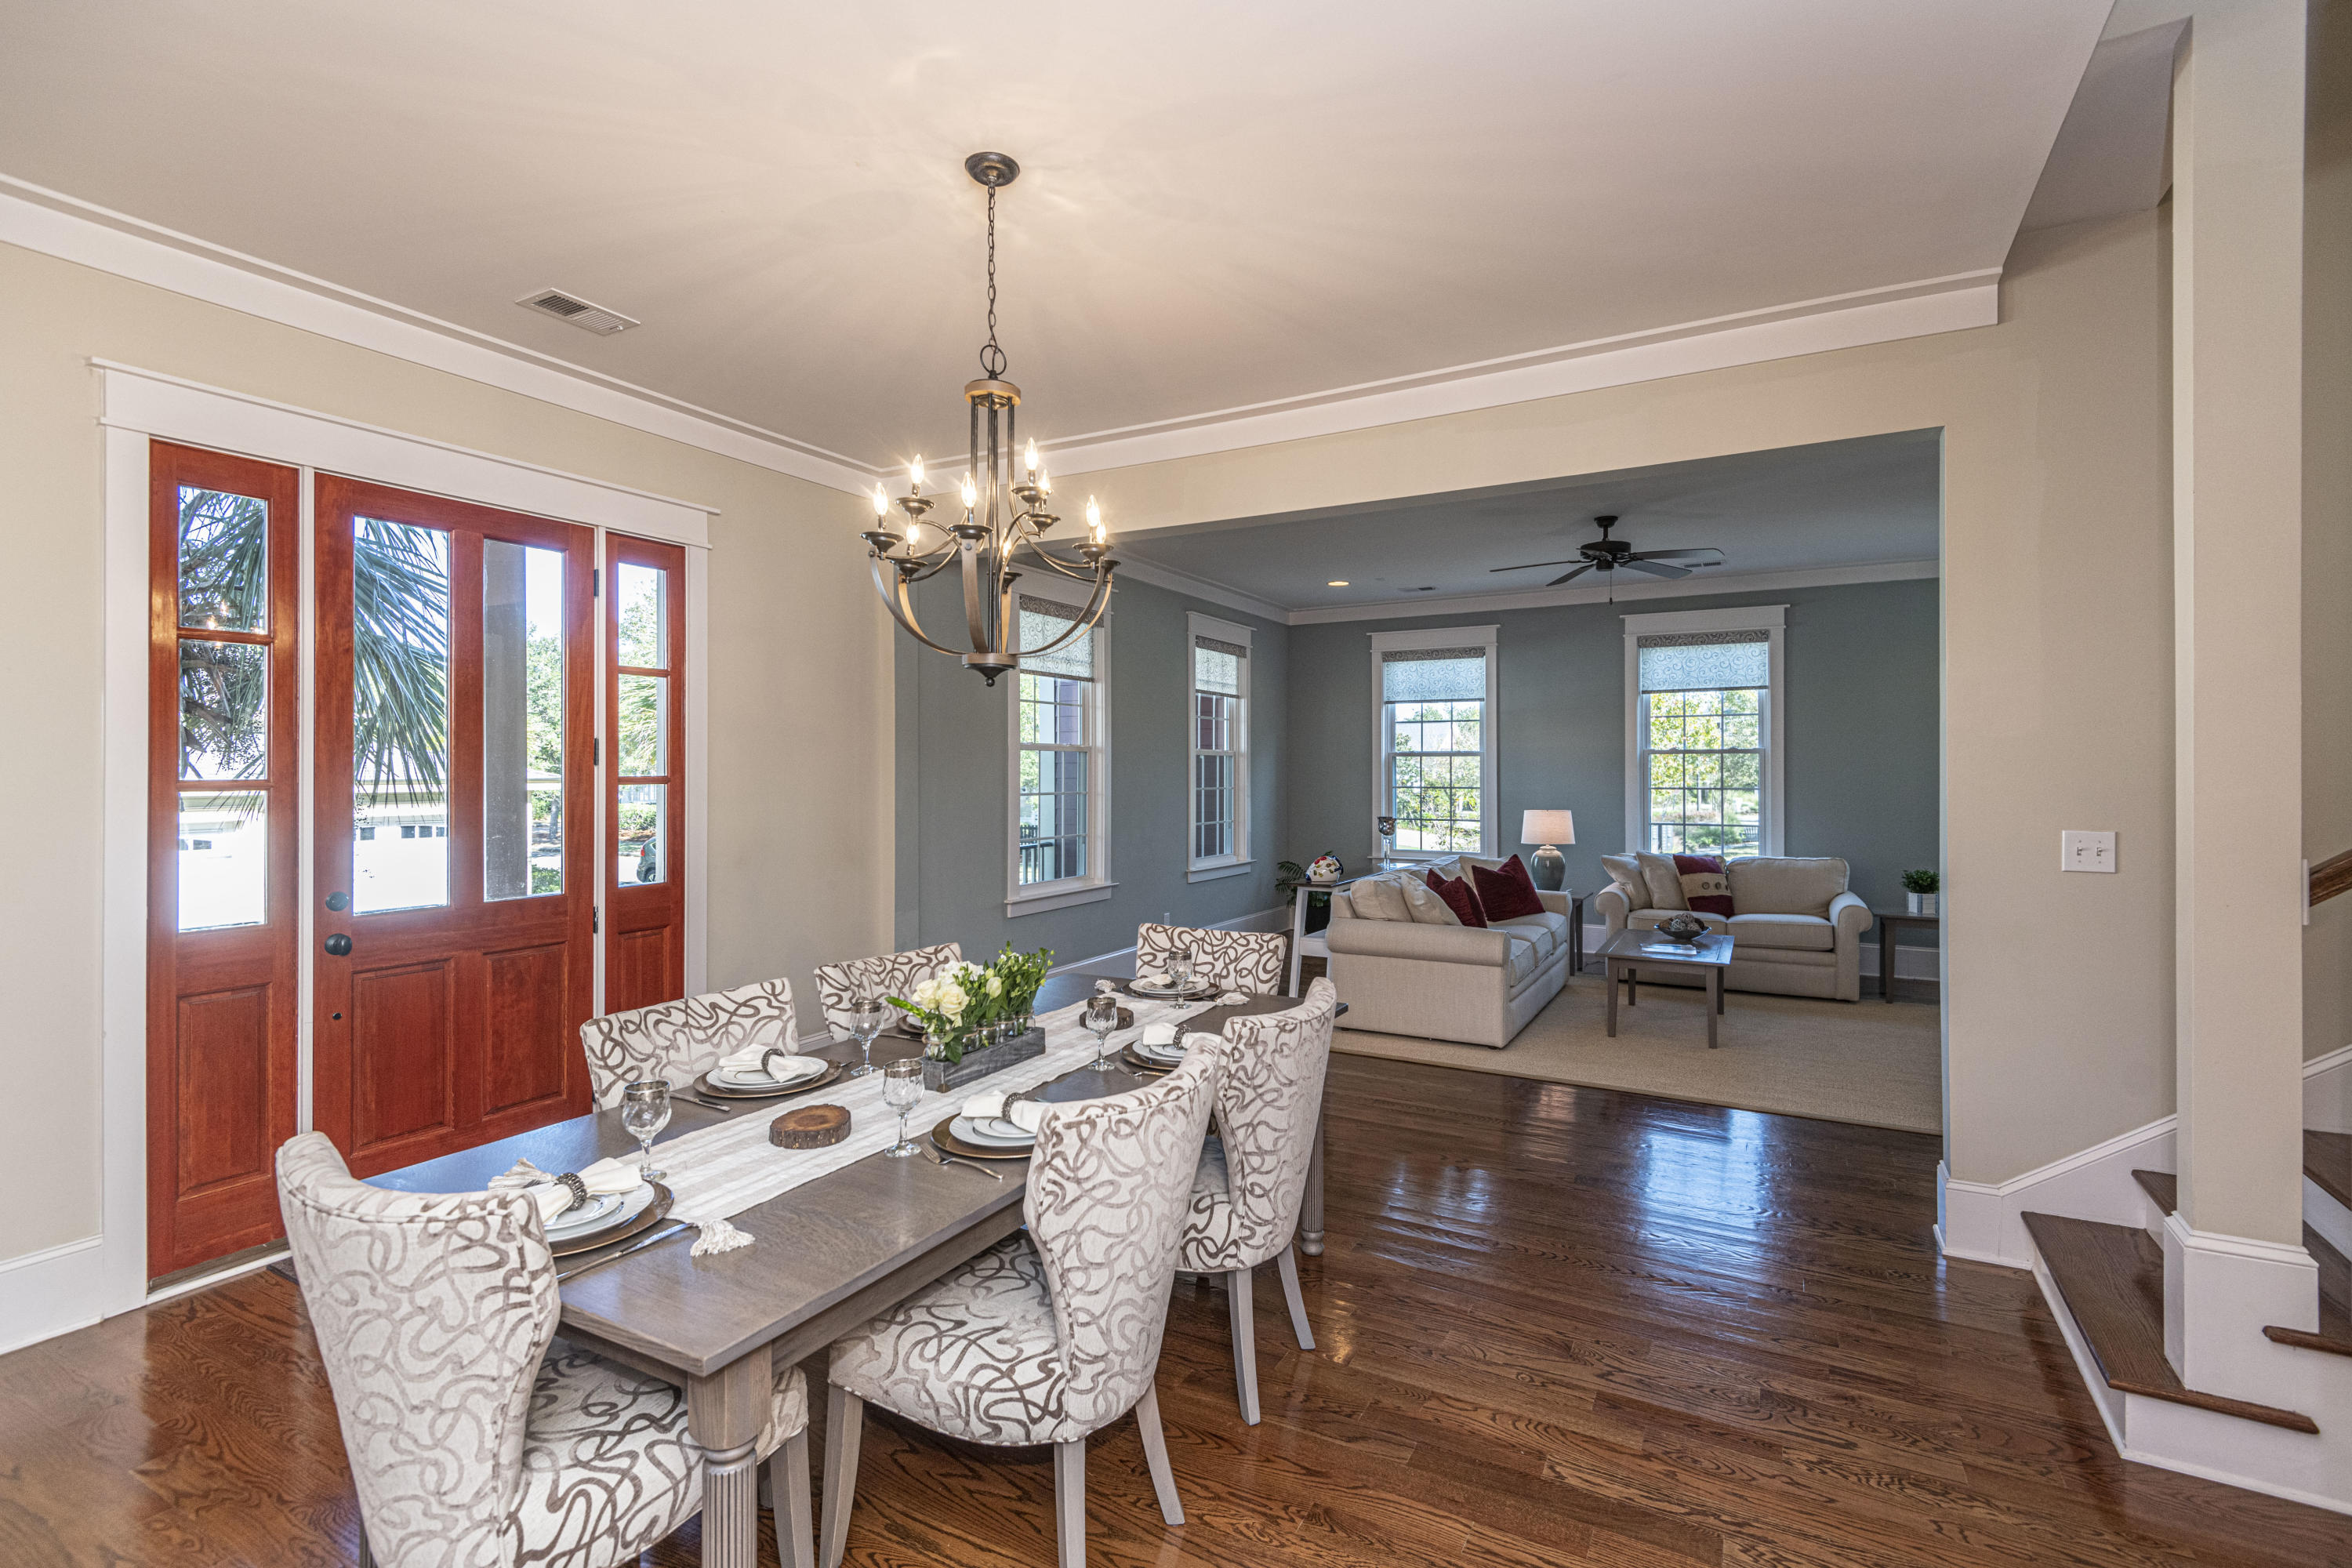 Watermark Homes For Sale - 1401 Lettered Olive, Mount Pleasant, SC - 9